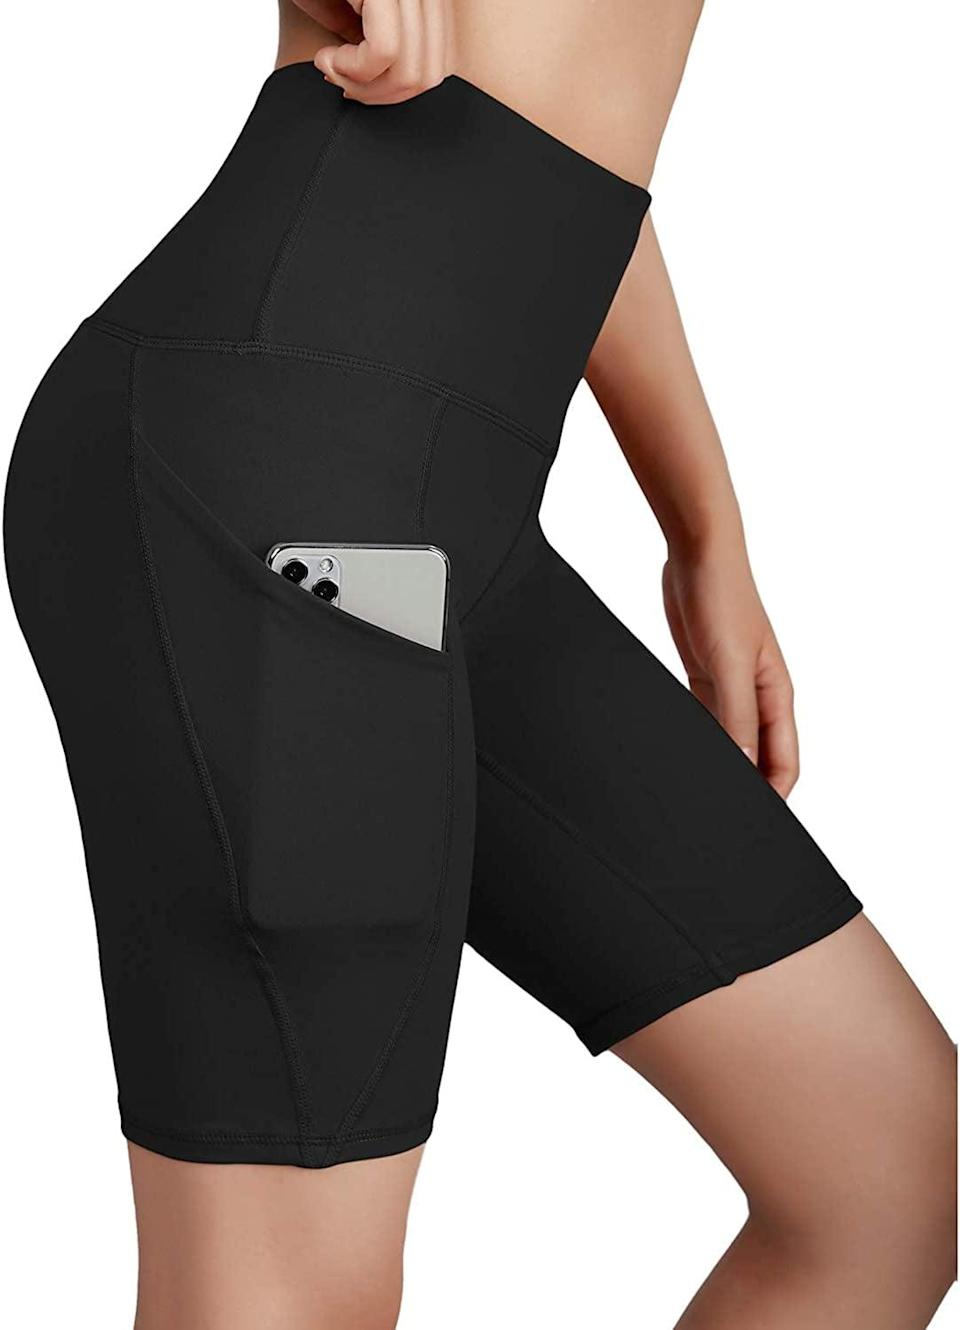 <p>These <span>Ododos Dual Pocket High Waist Workout Shorts</span> ($21, originally $46) have pockets, which is so useful! Store your phone, keys, and mask, and you're ready to go!</p>